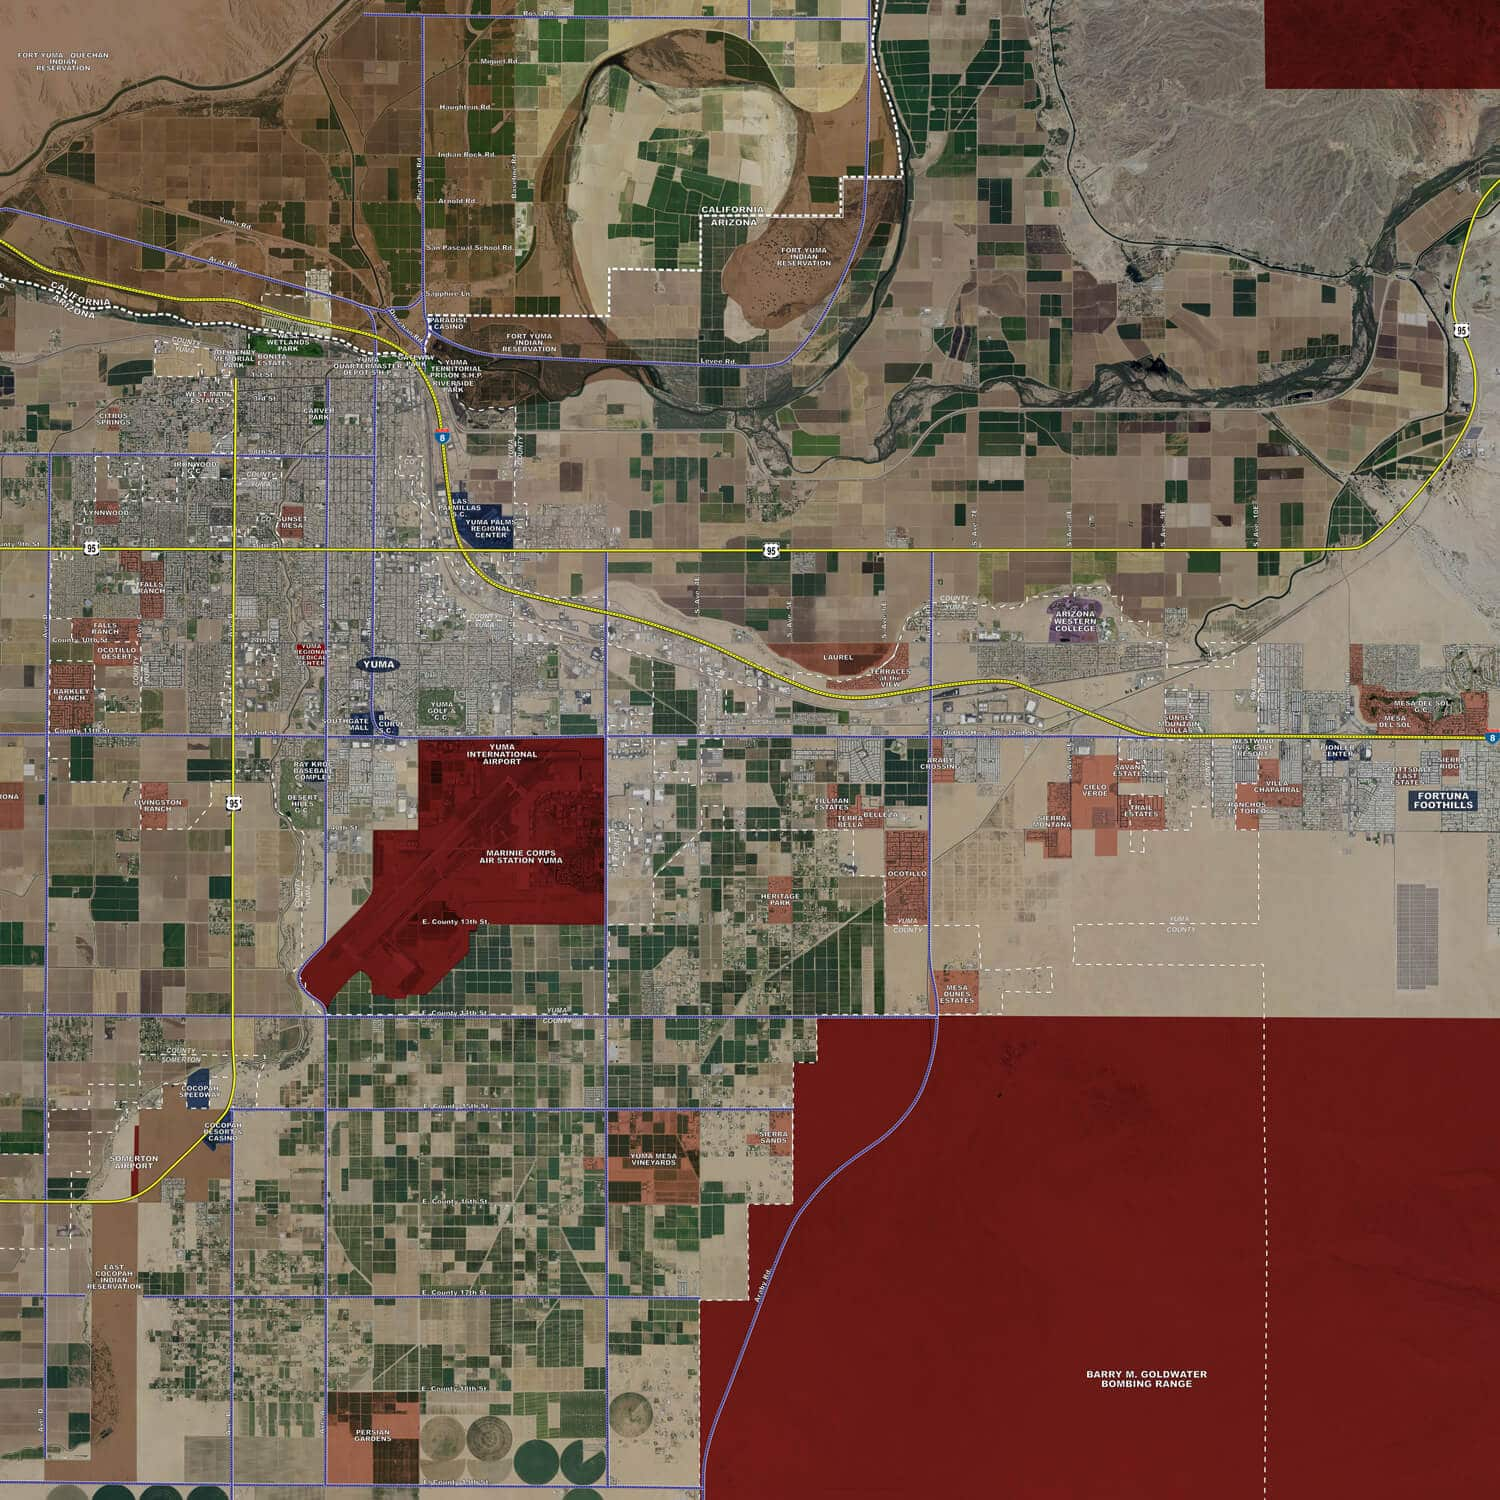 Yuma rolled aerial map landiscor real estate mapping 2016 yuma rolled aerial map poster print scale 27x29 gumiabroncs Images